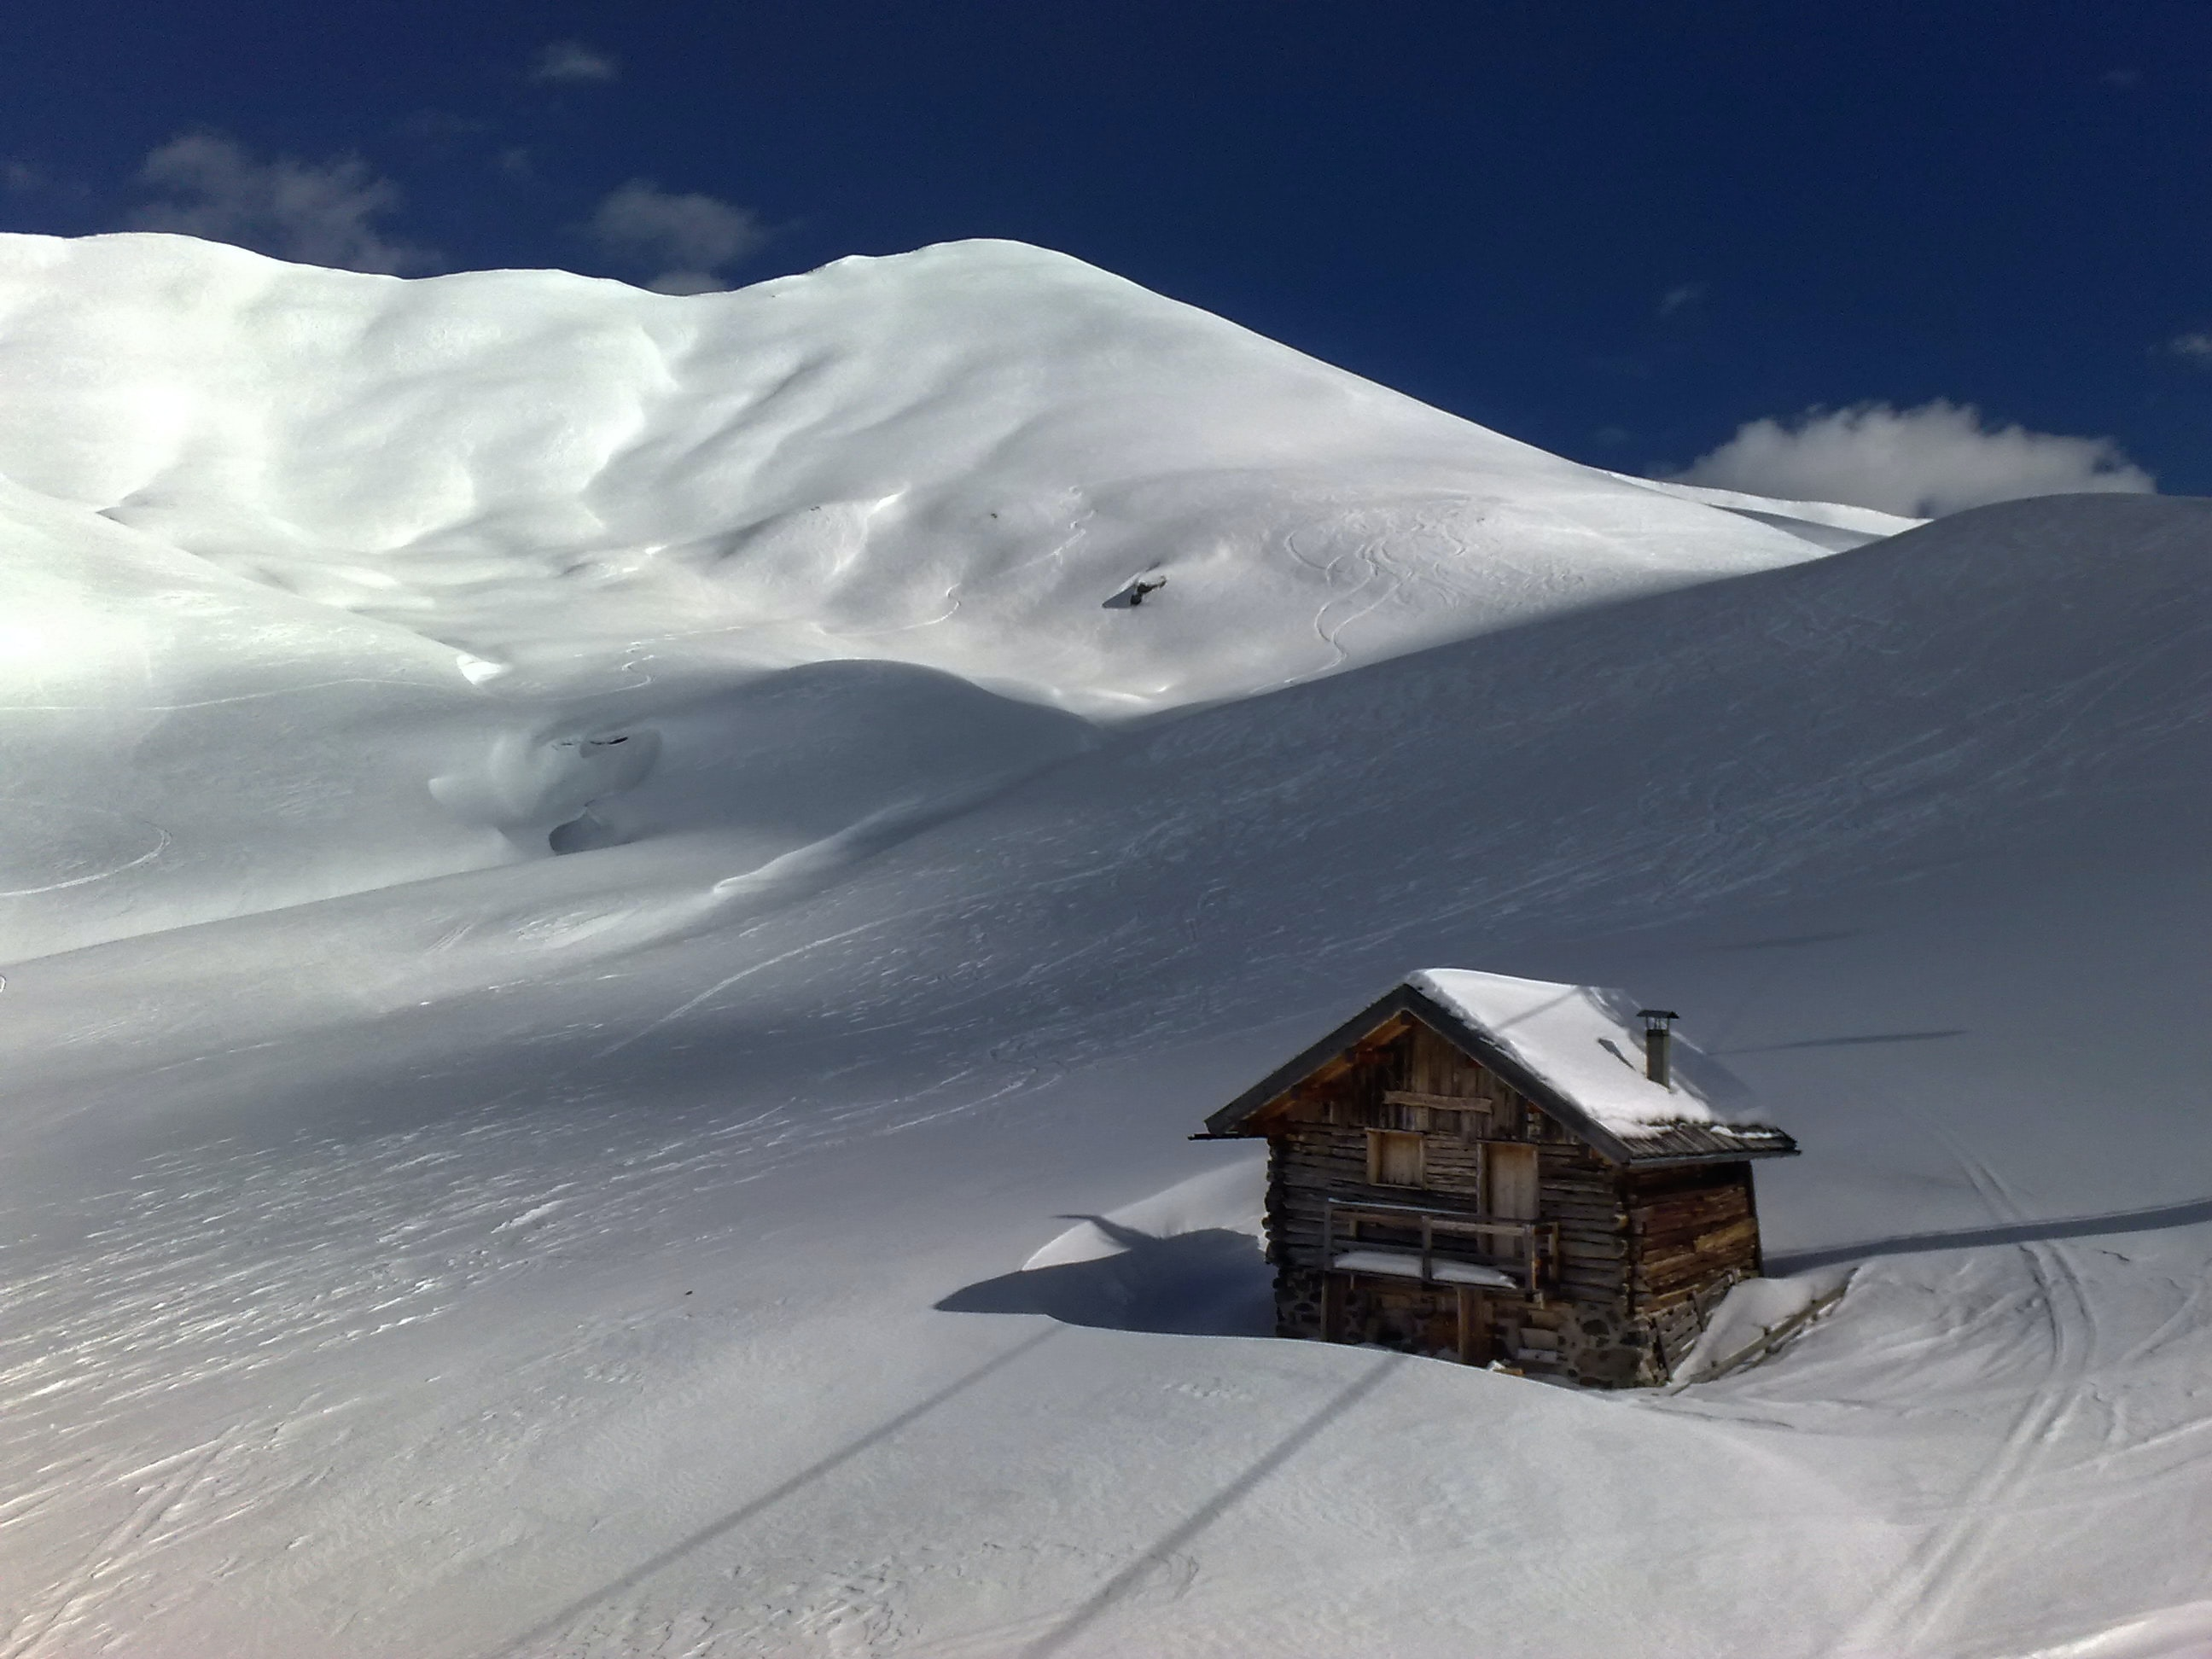 brown wooden house on the center of snow covered land